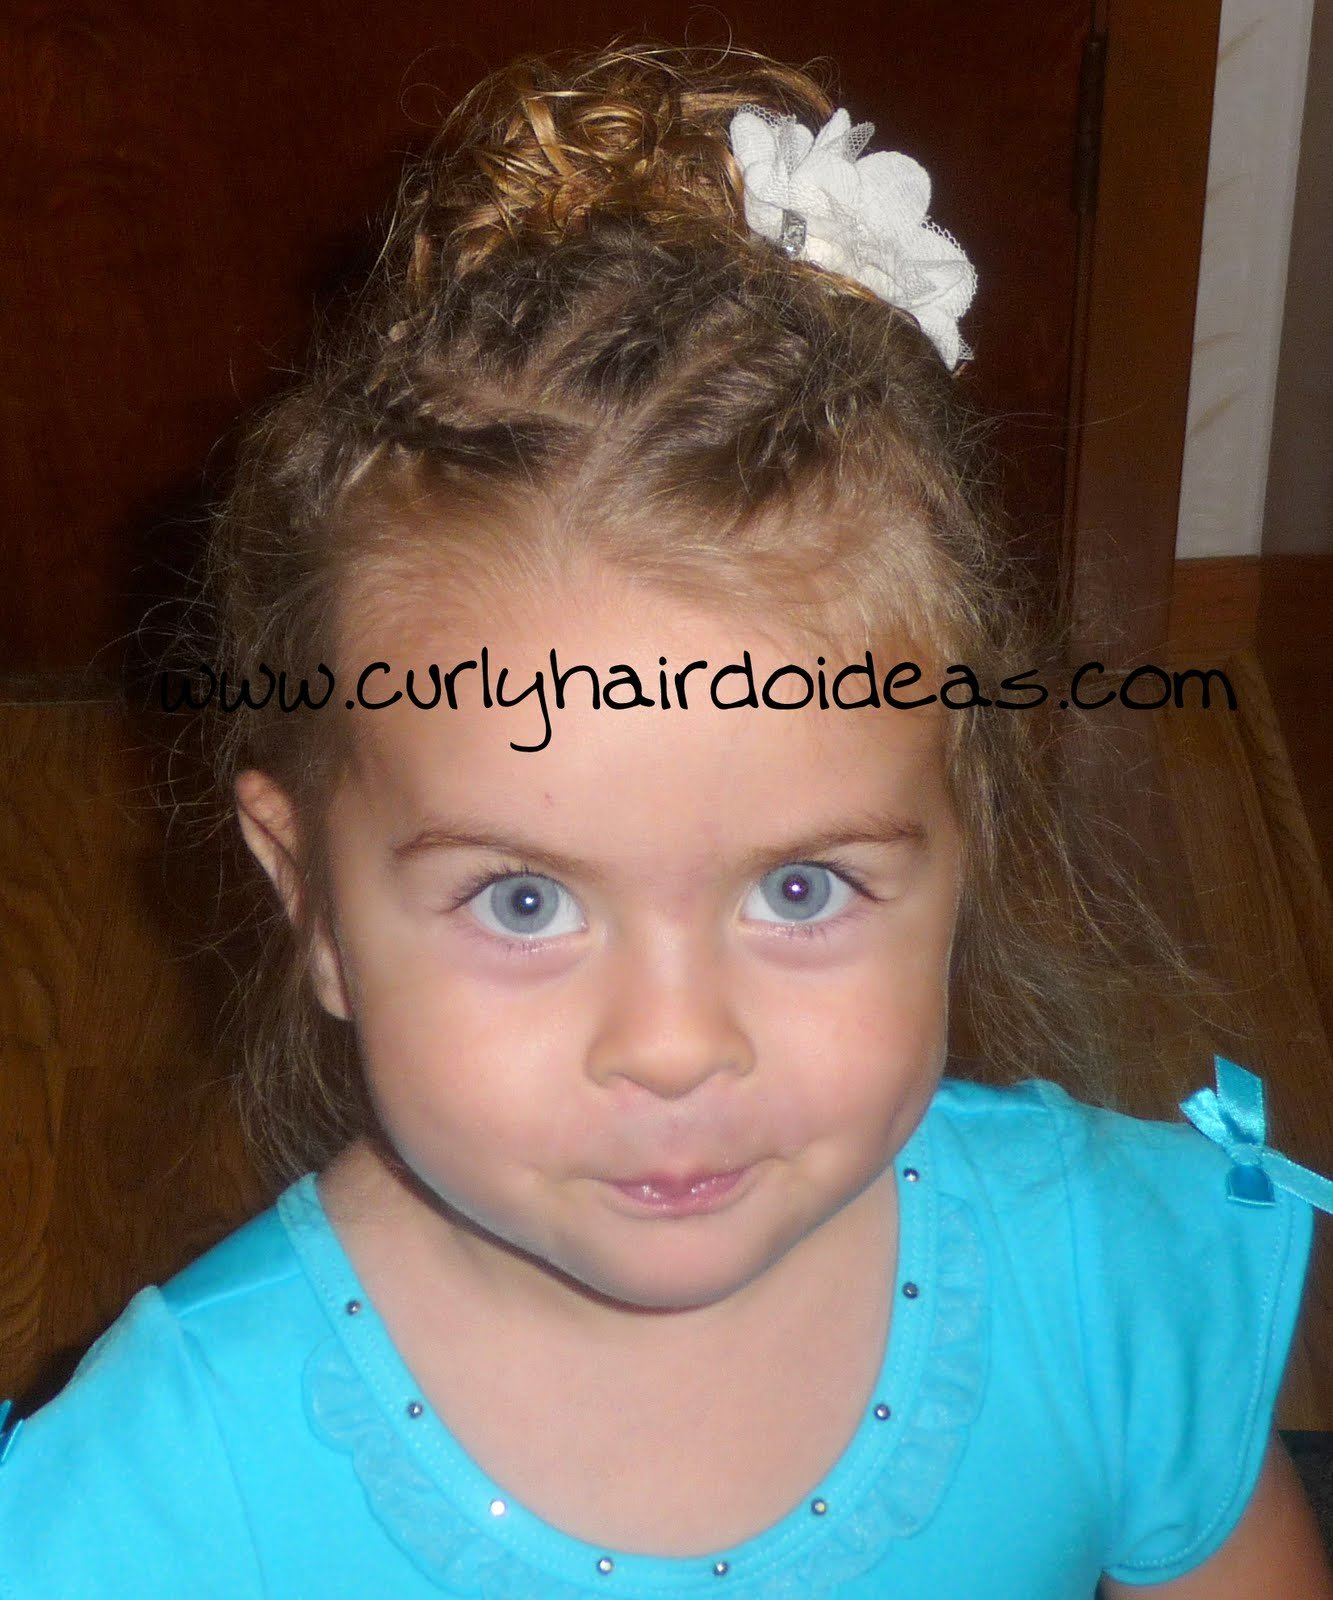 The Best Curly Hairdo Ideas Toddler Hairstyle For Dance Class Pictures